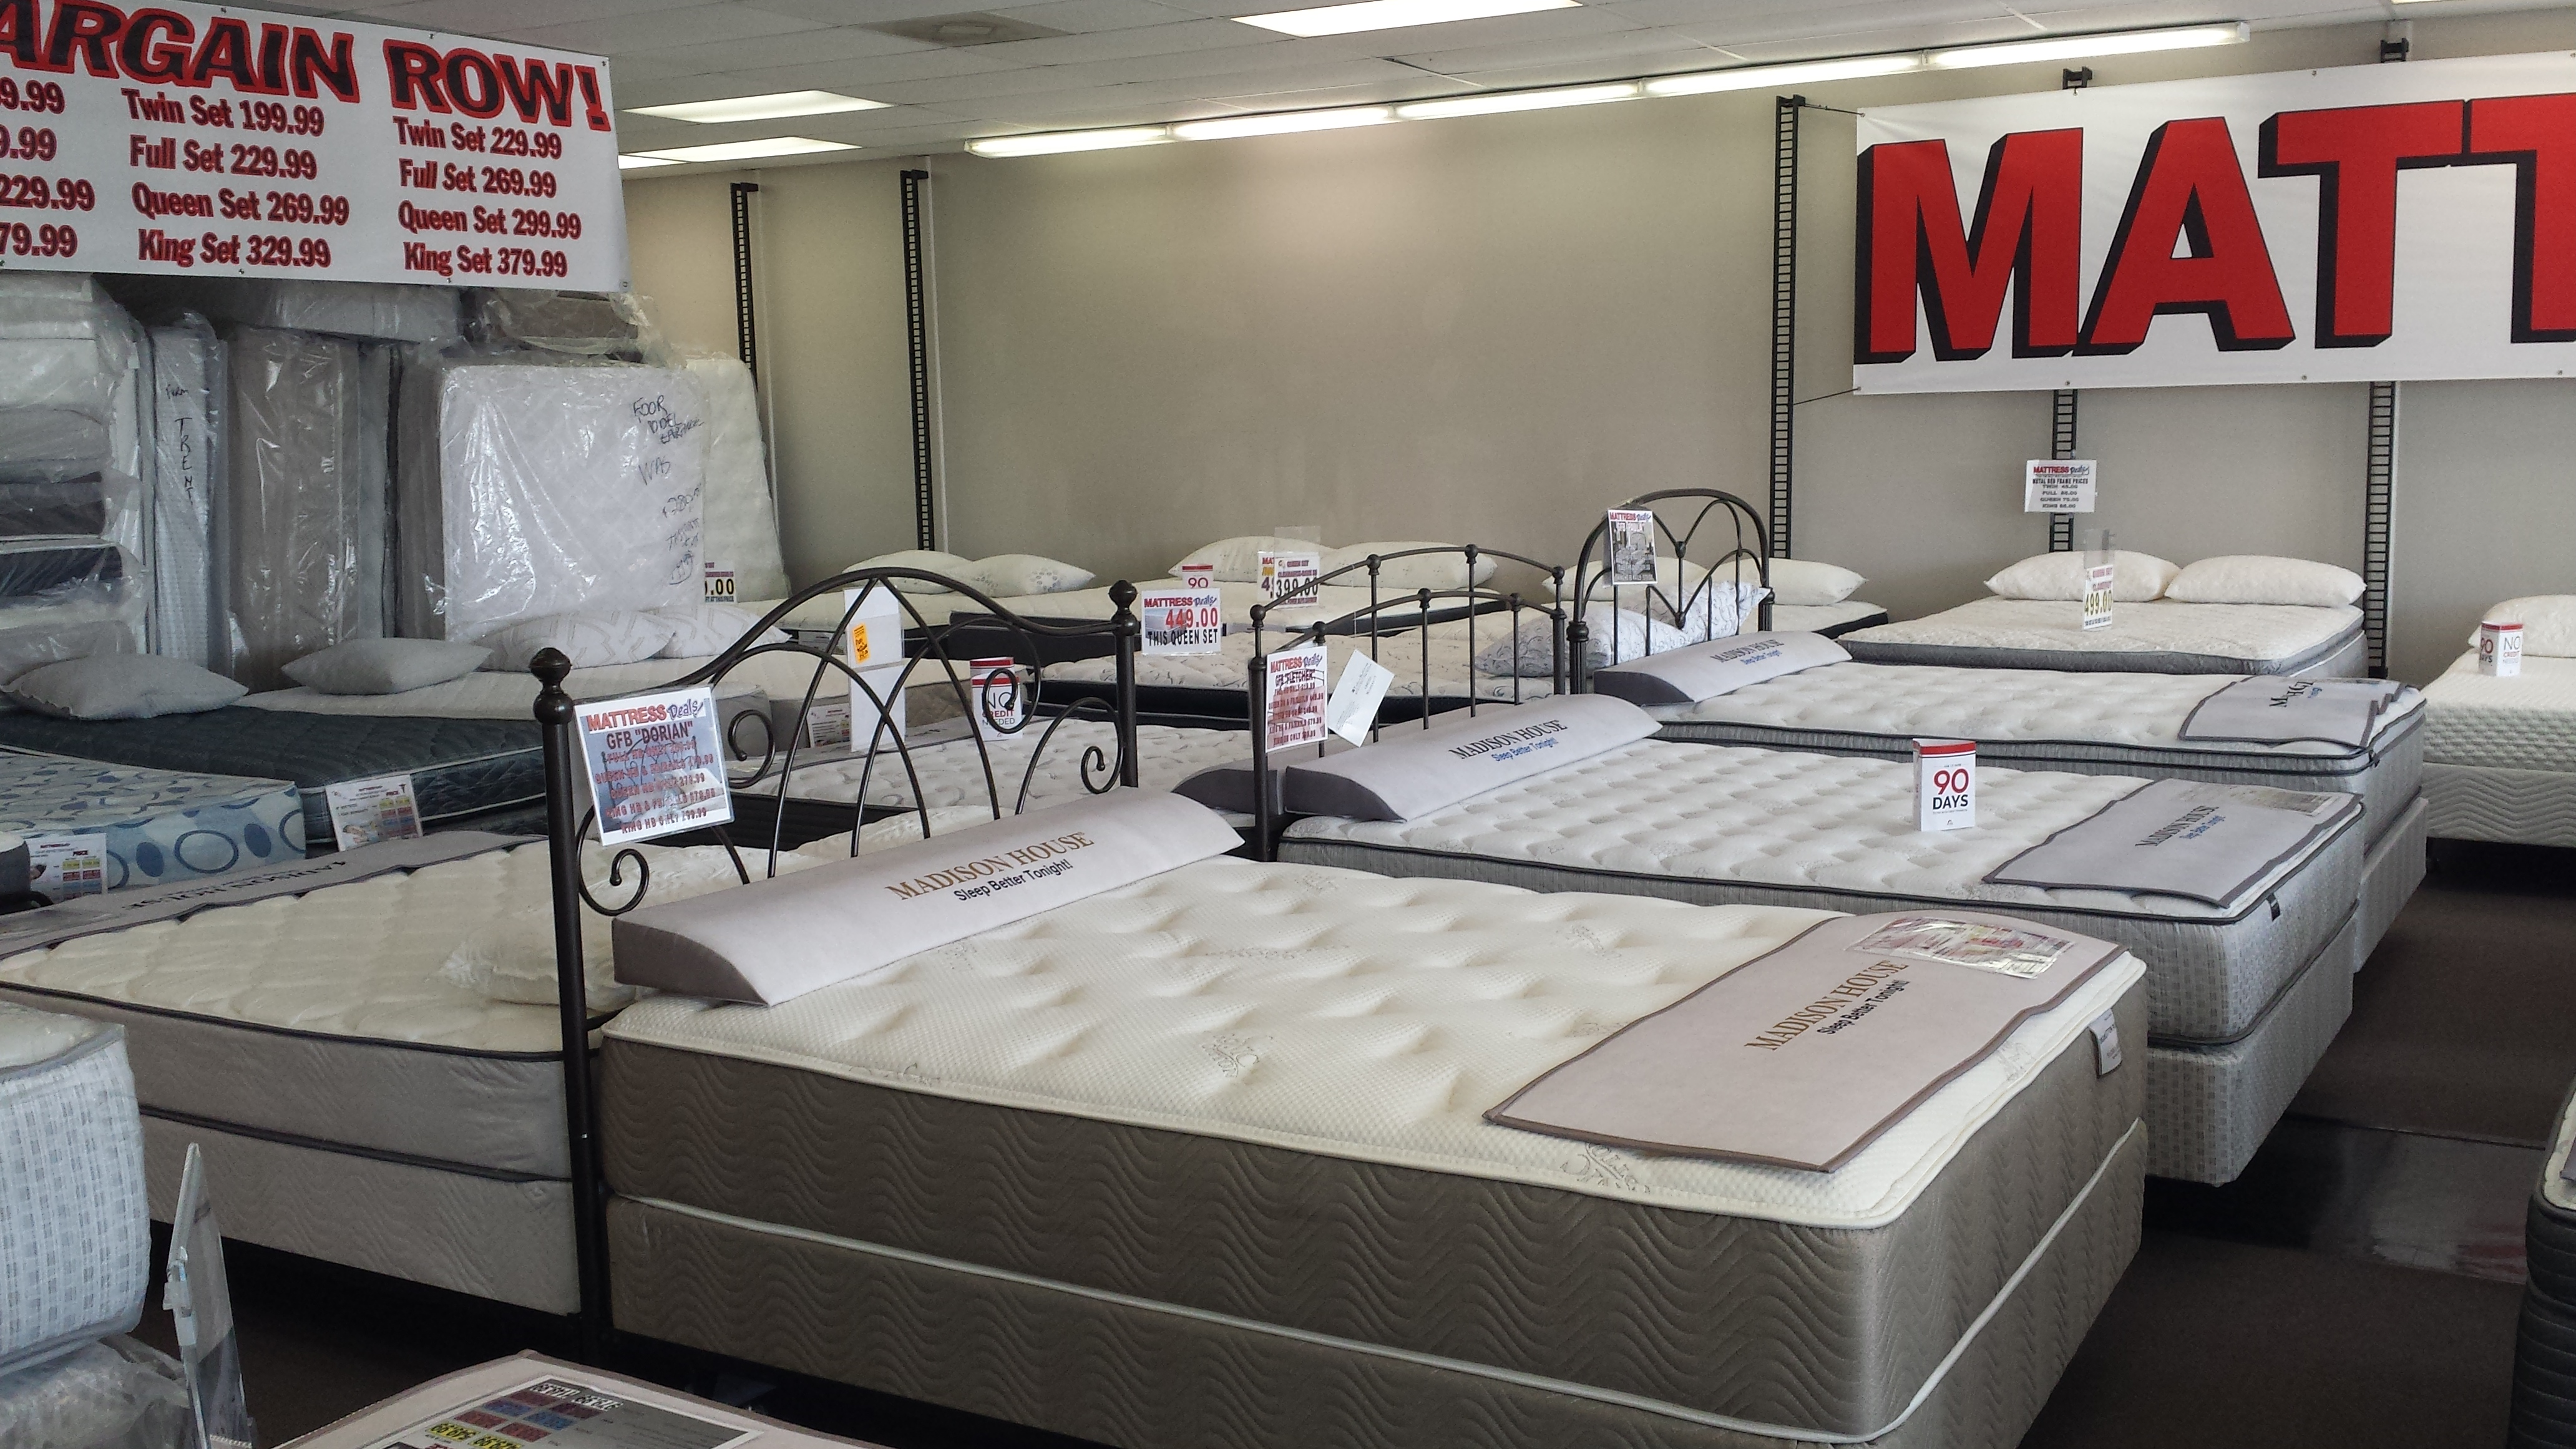 Mattress Deals image 18